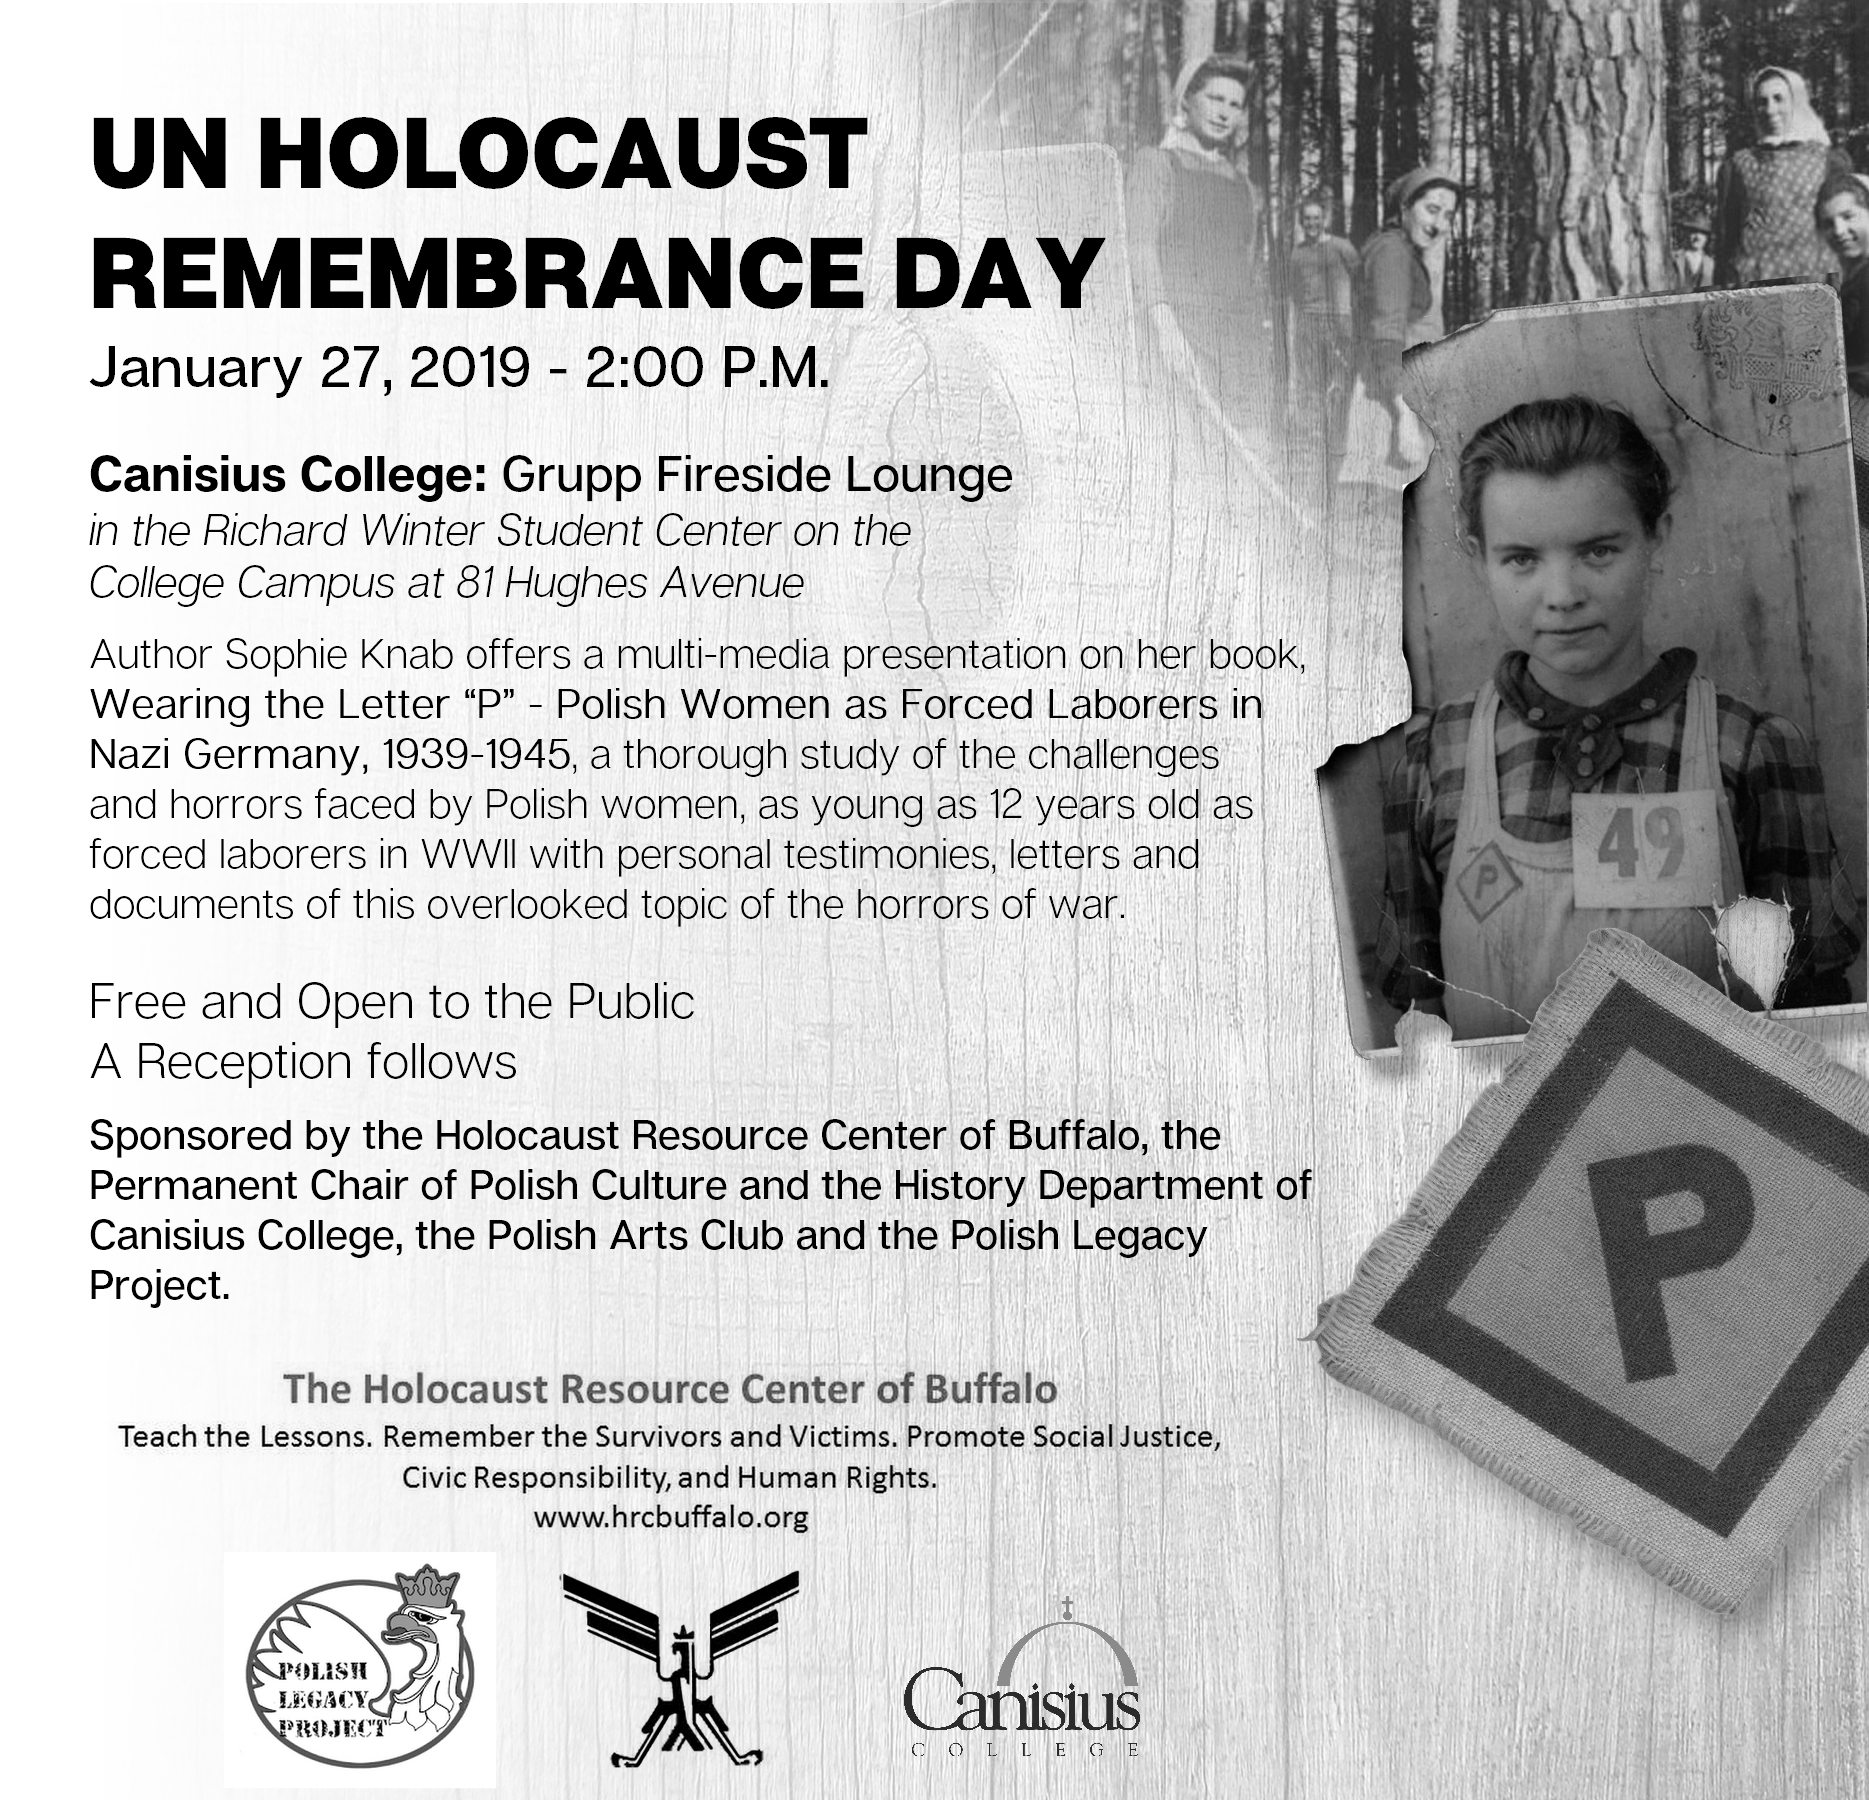 UN Remembrance Day Flyer.jpg